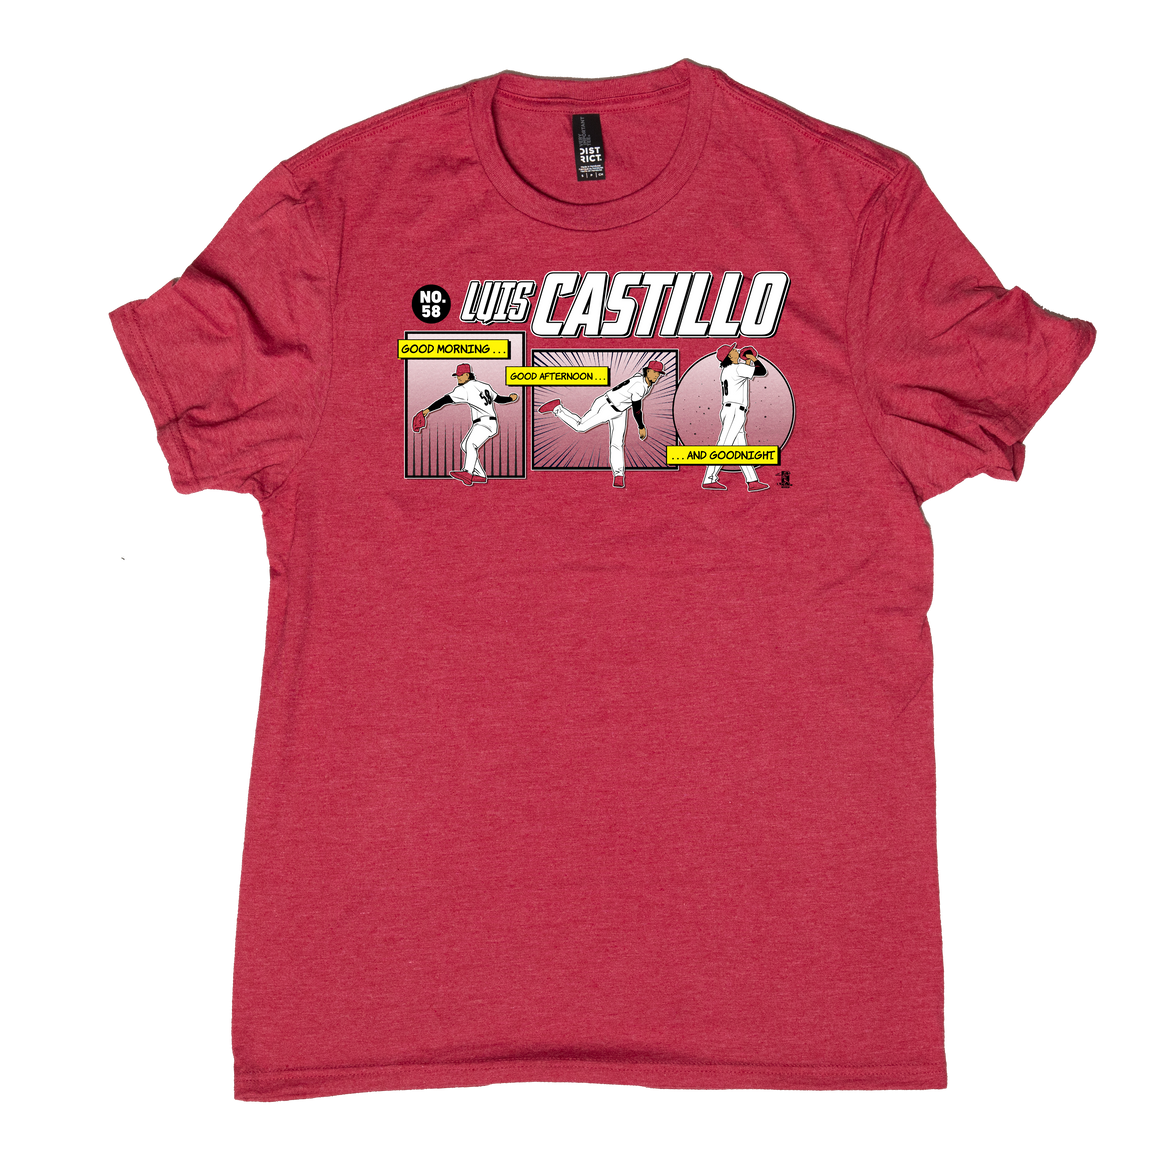 Luis Castillo -  Good Morning, Good Afternoon, and Goodnight T-shirt